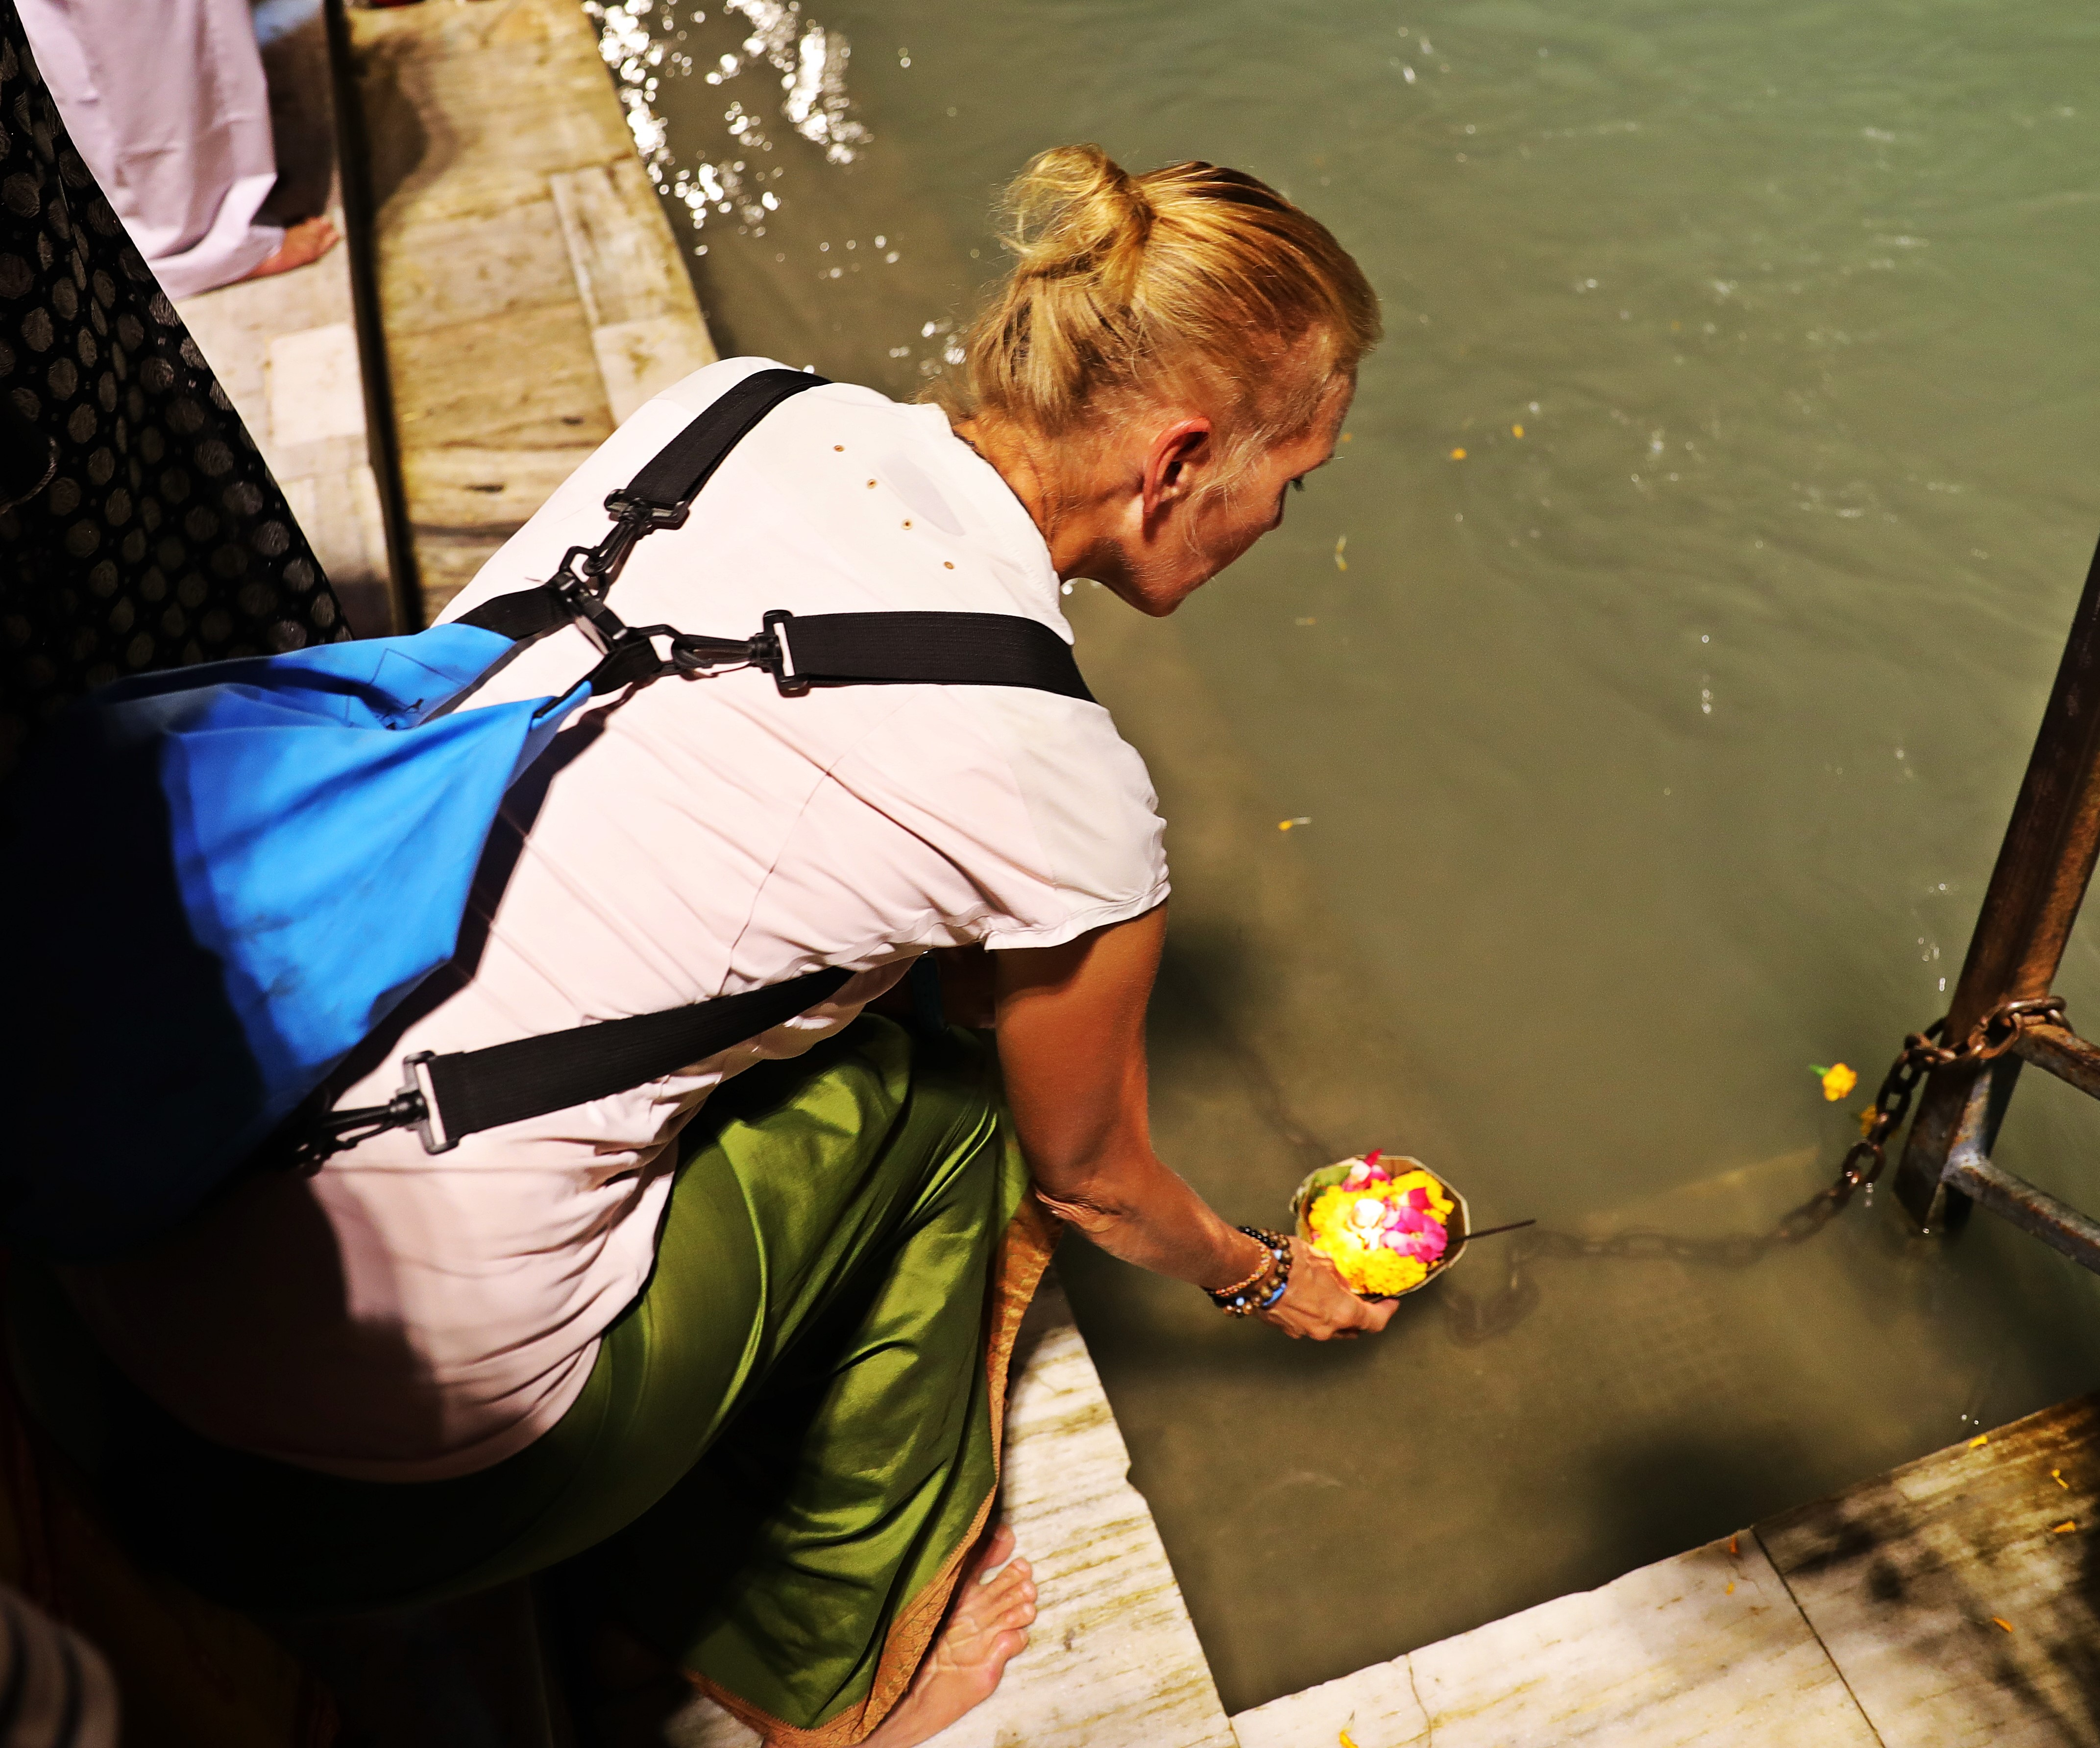 Putting a diya in the Ganges